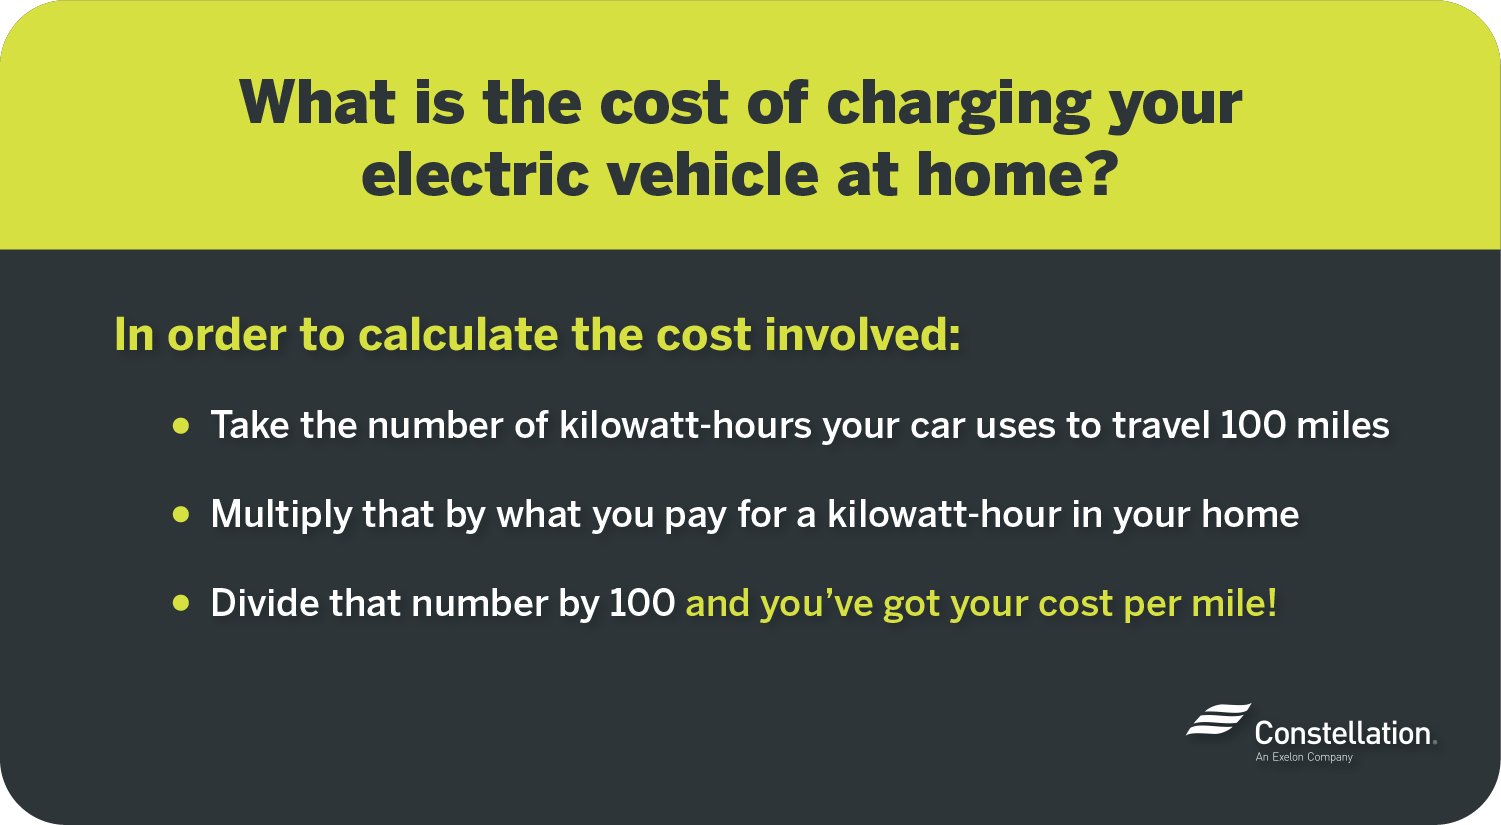 The cost of charging your electric vehicle at home